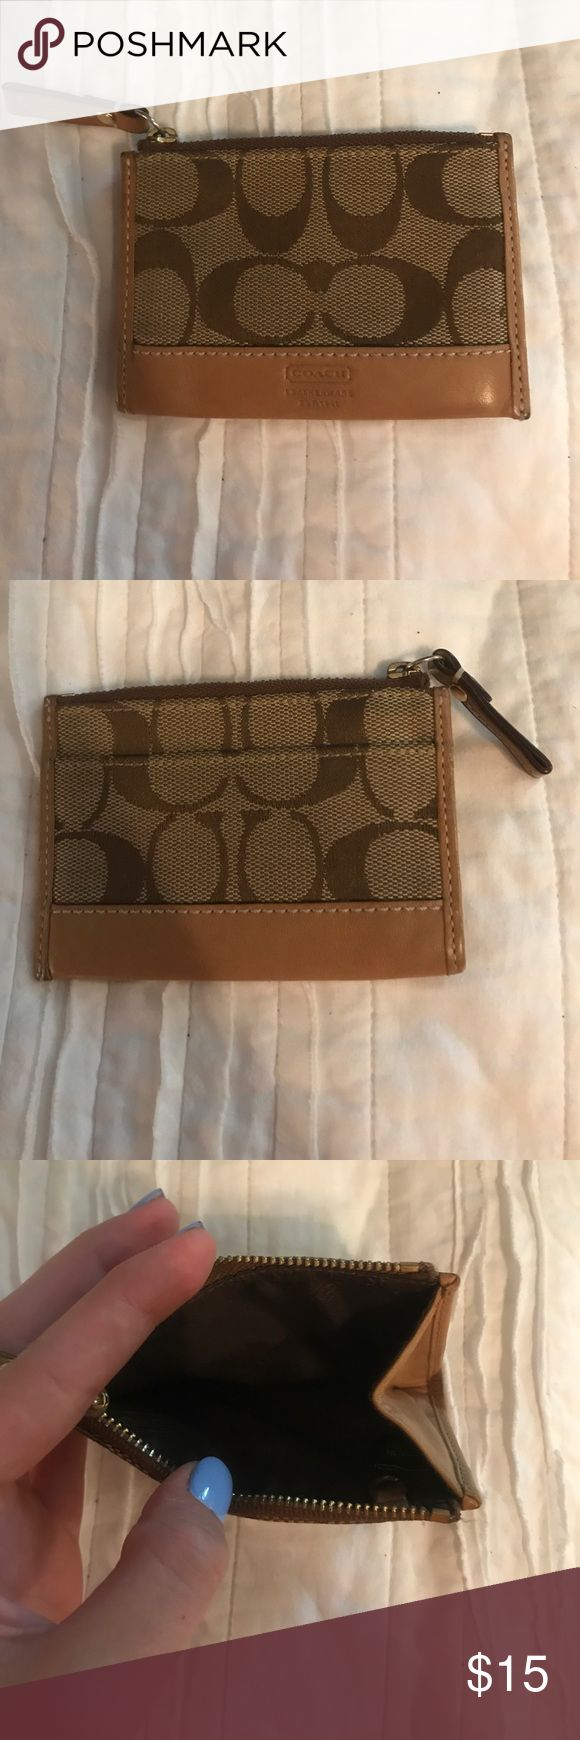 Coach wallet Tiny coach wallet- it has an exterior card pocket. In great condition with no marks or rips. Coach Bags Wallets